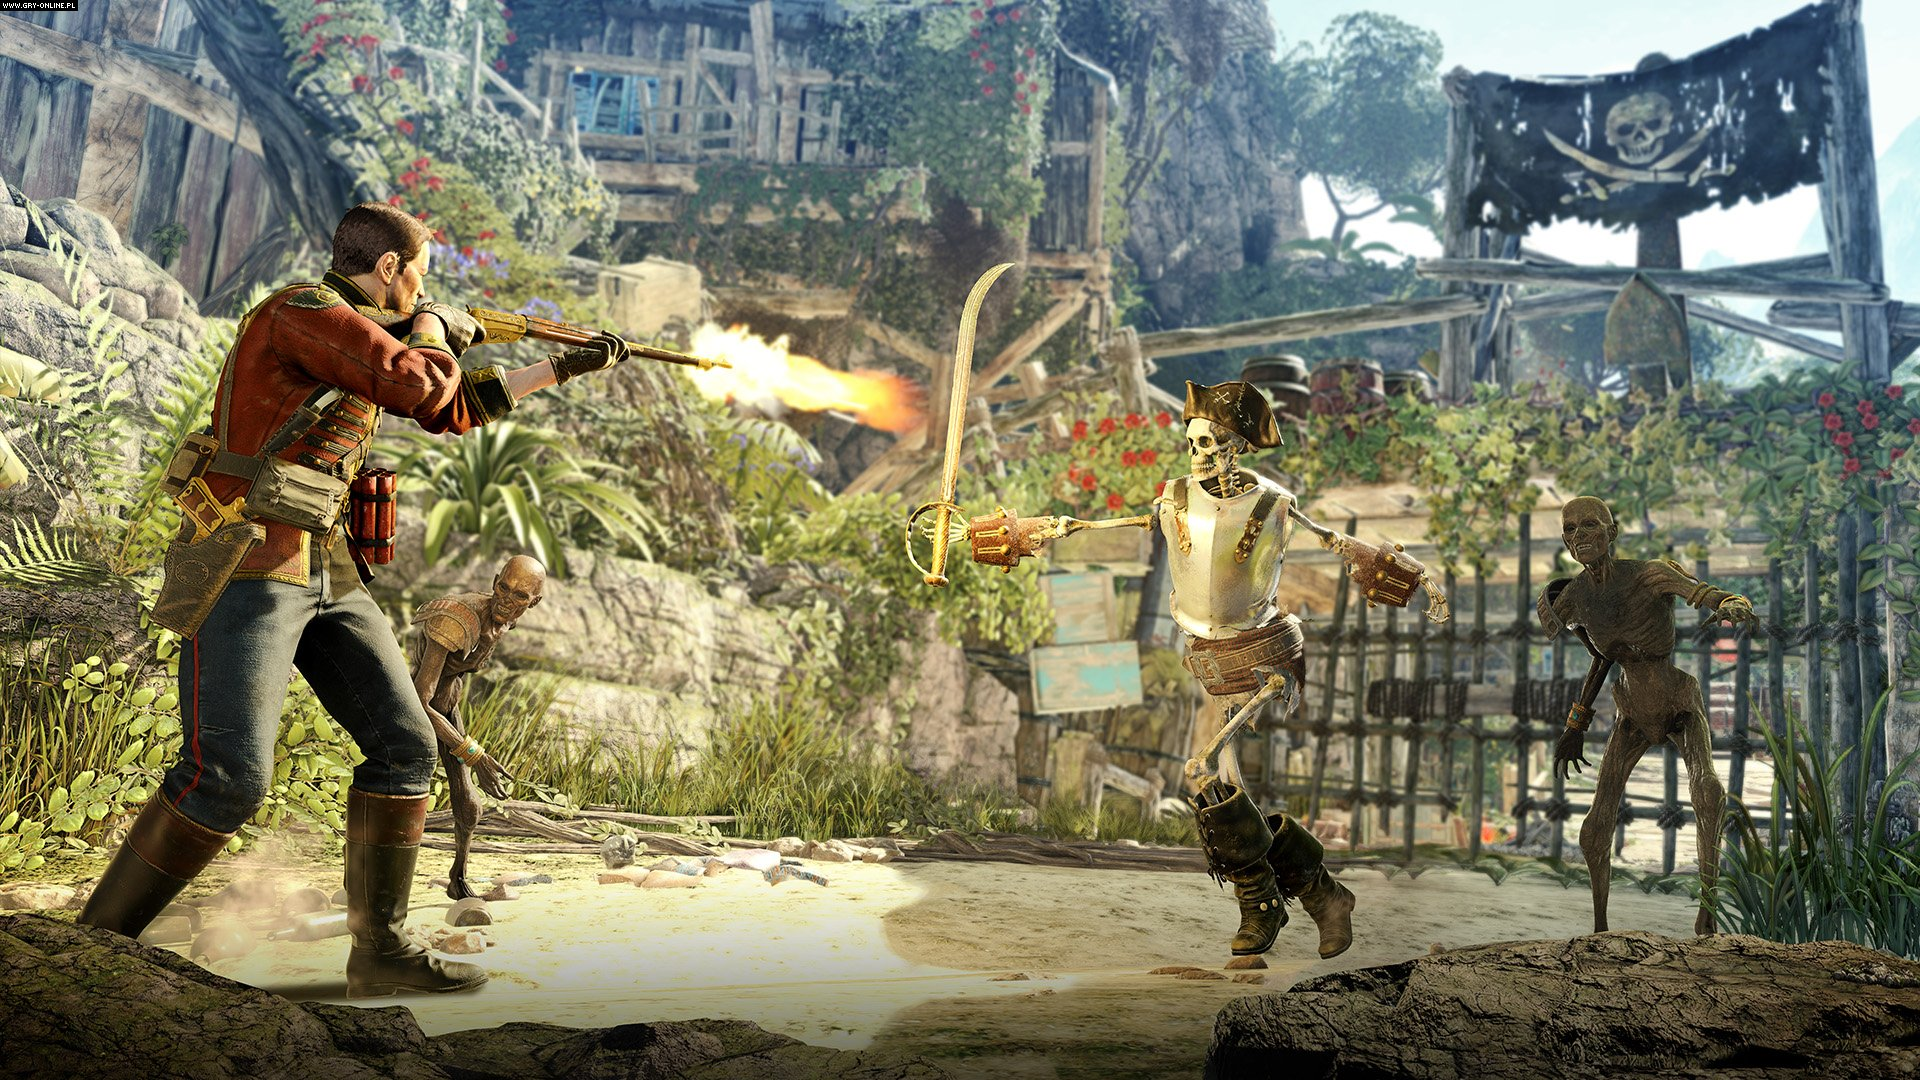 Strange Brigade PC, PS4, XONE Games Image 1/16, Rebellion